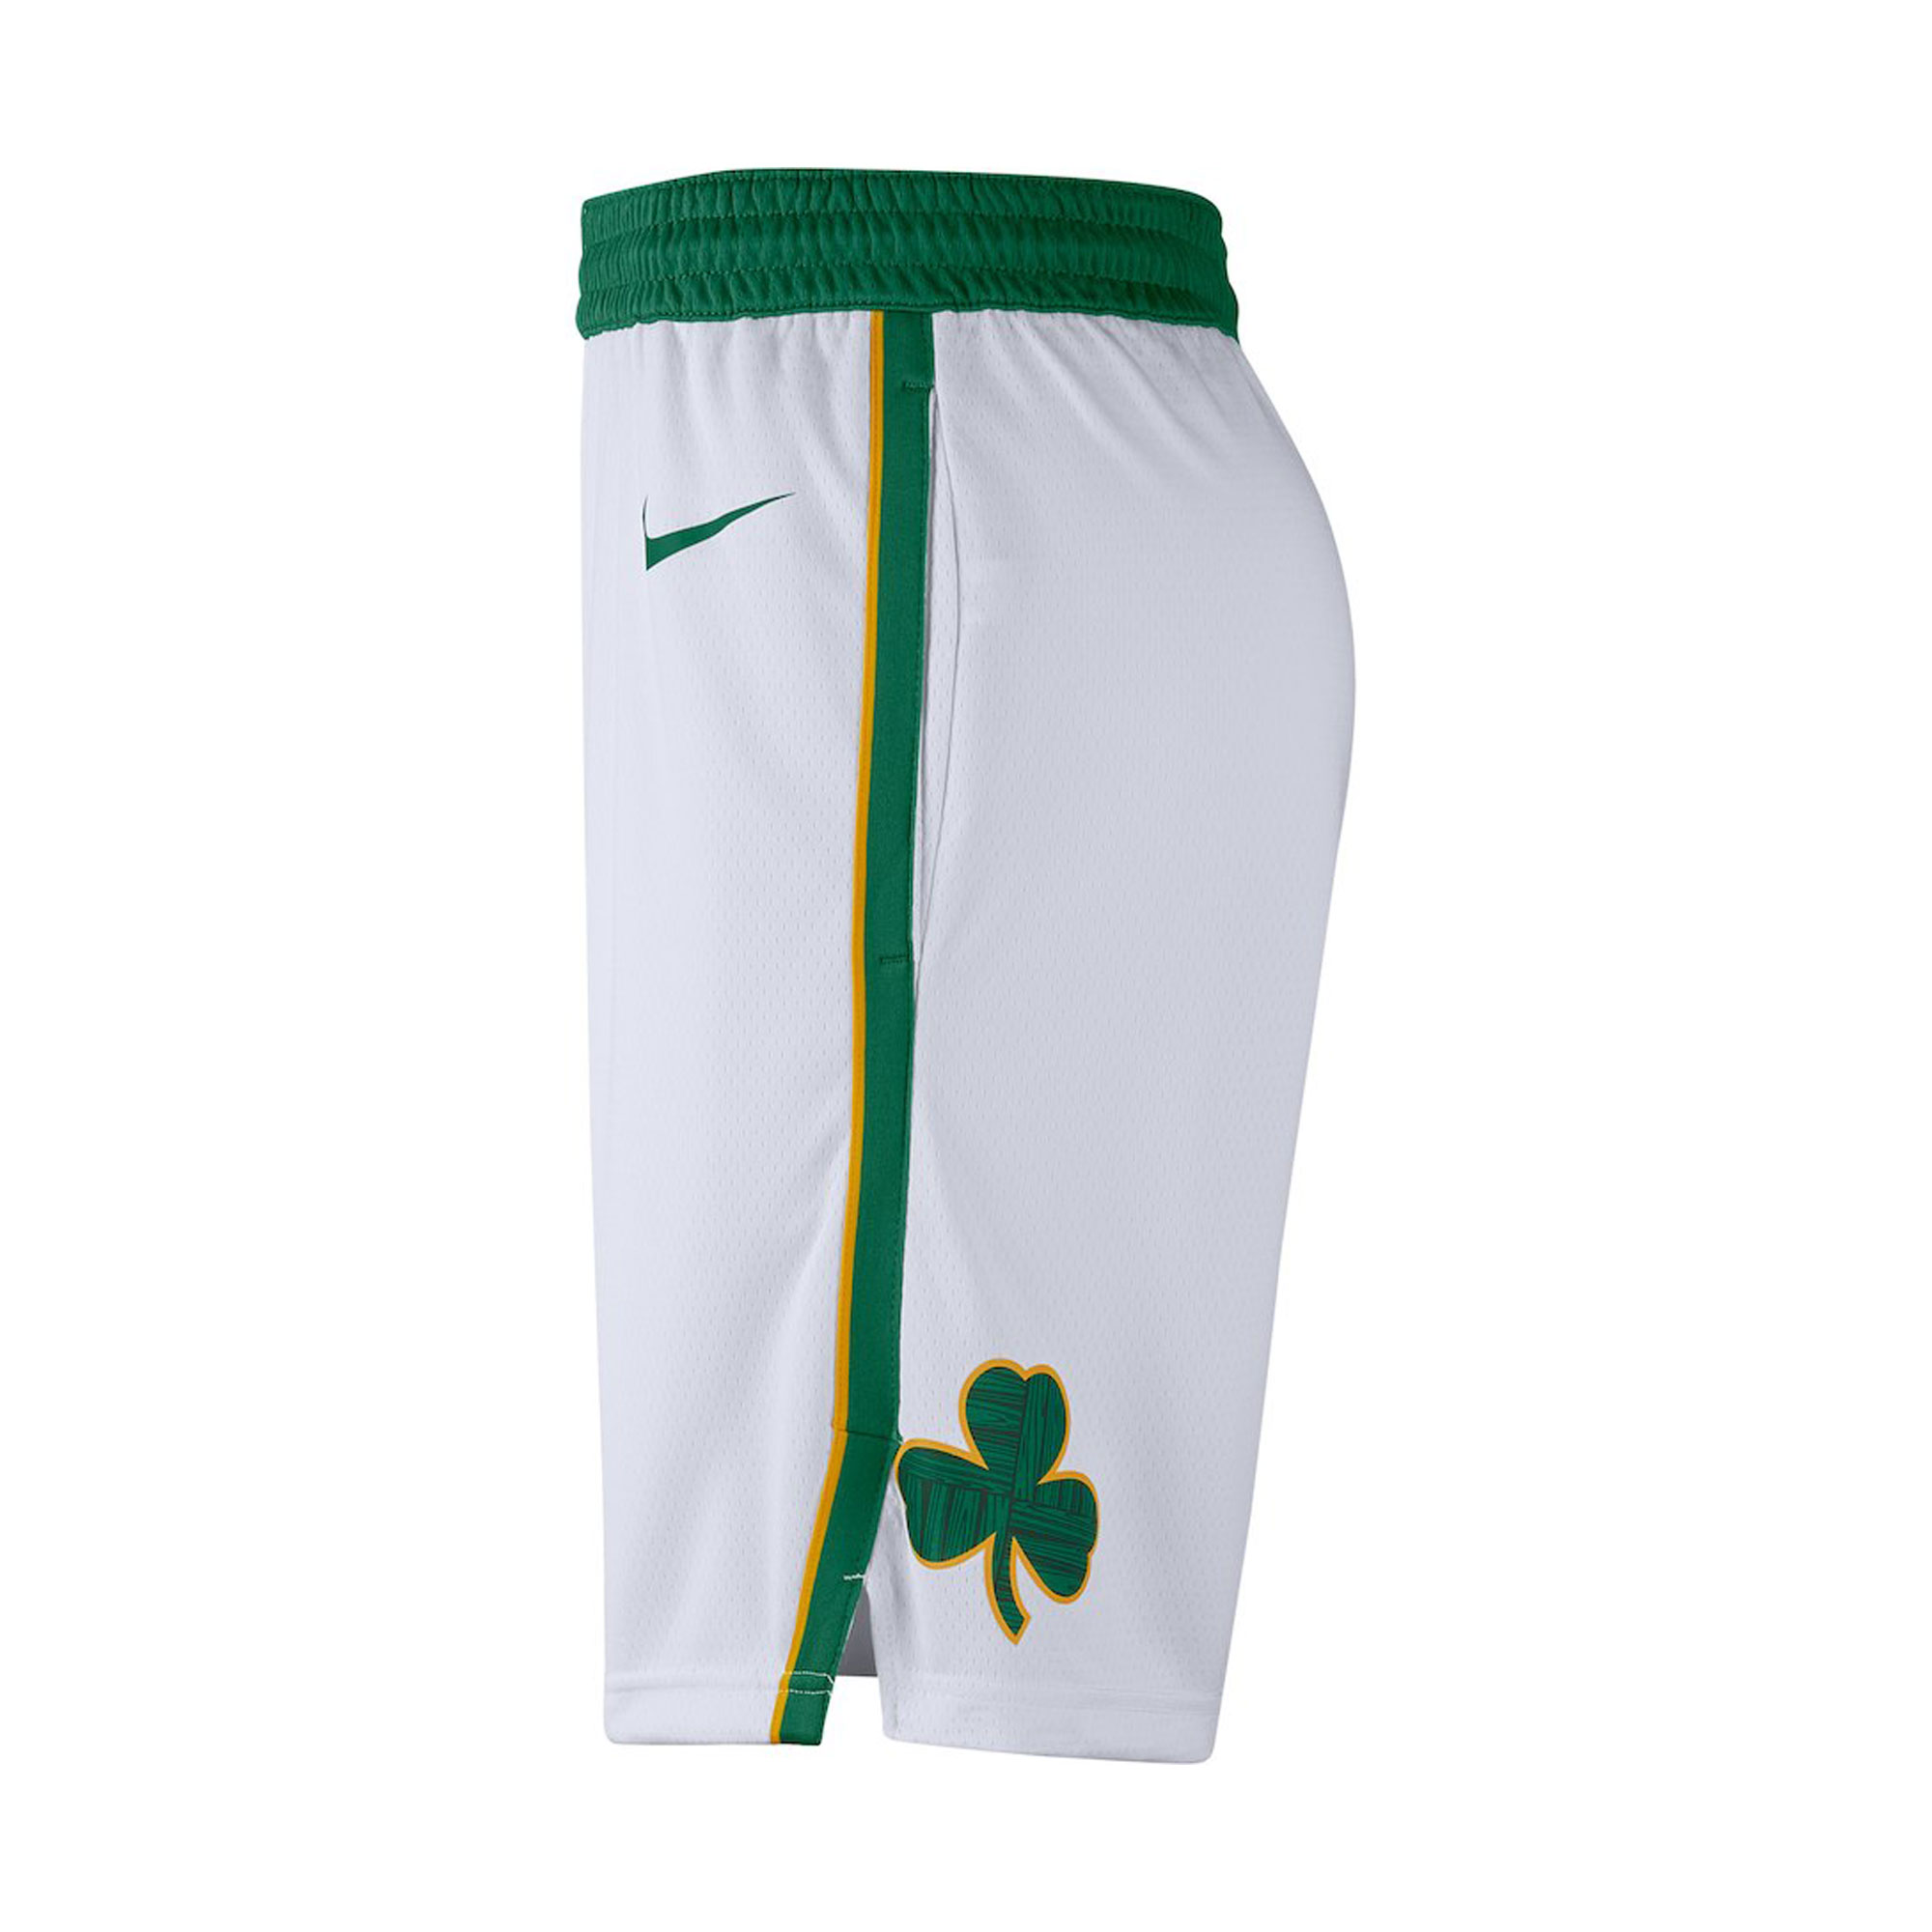 Boston Celtics Short (SRT-WHT-CELTICS01)